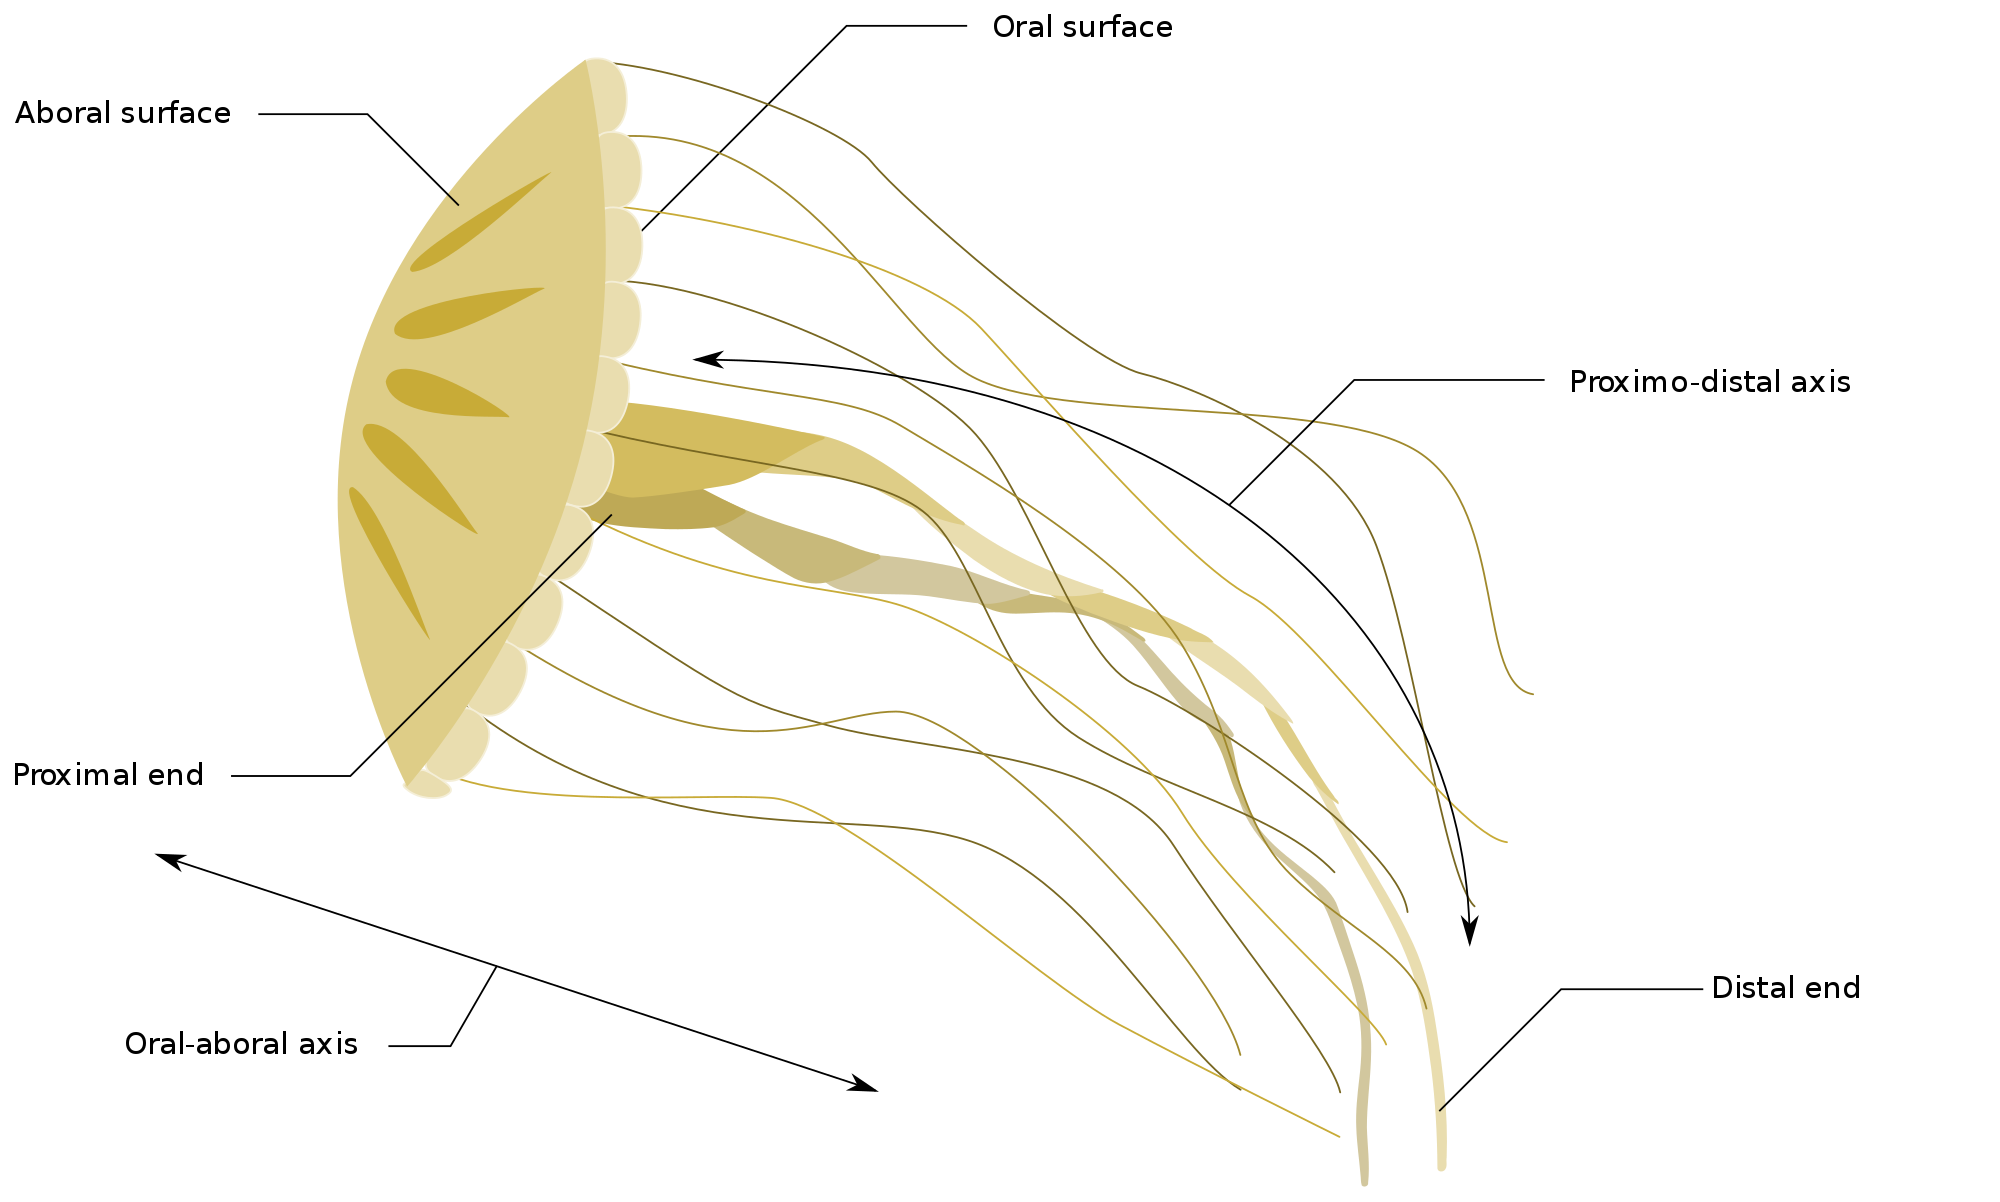 Axes wikimedia commons open. Jellyfish svg file image freeuse download